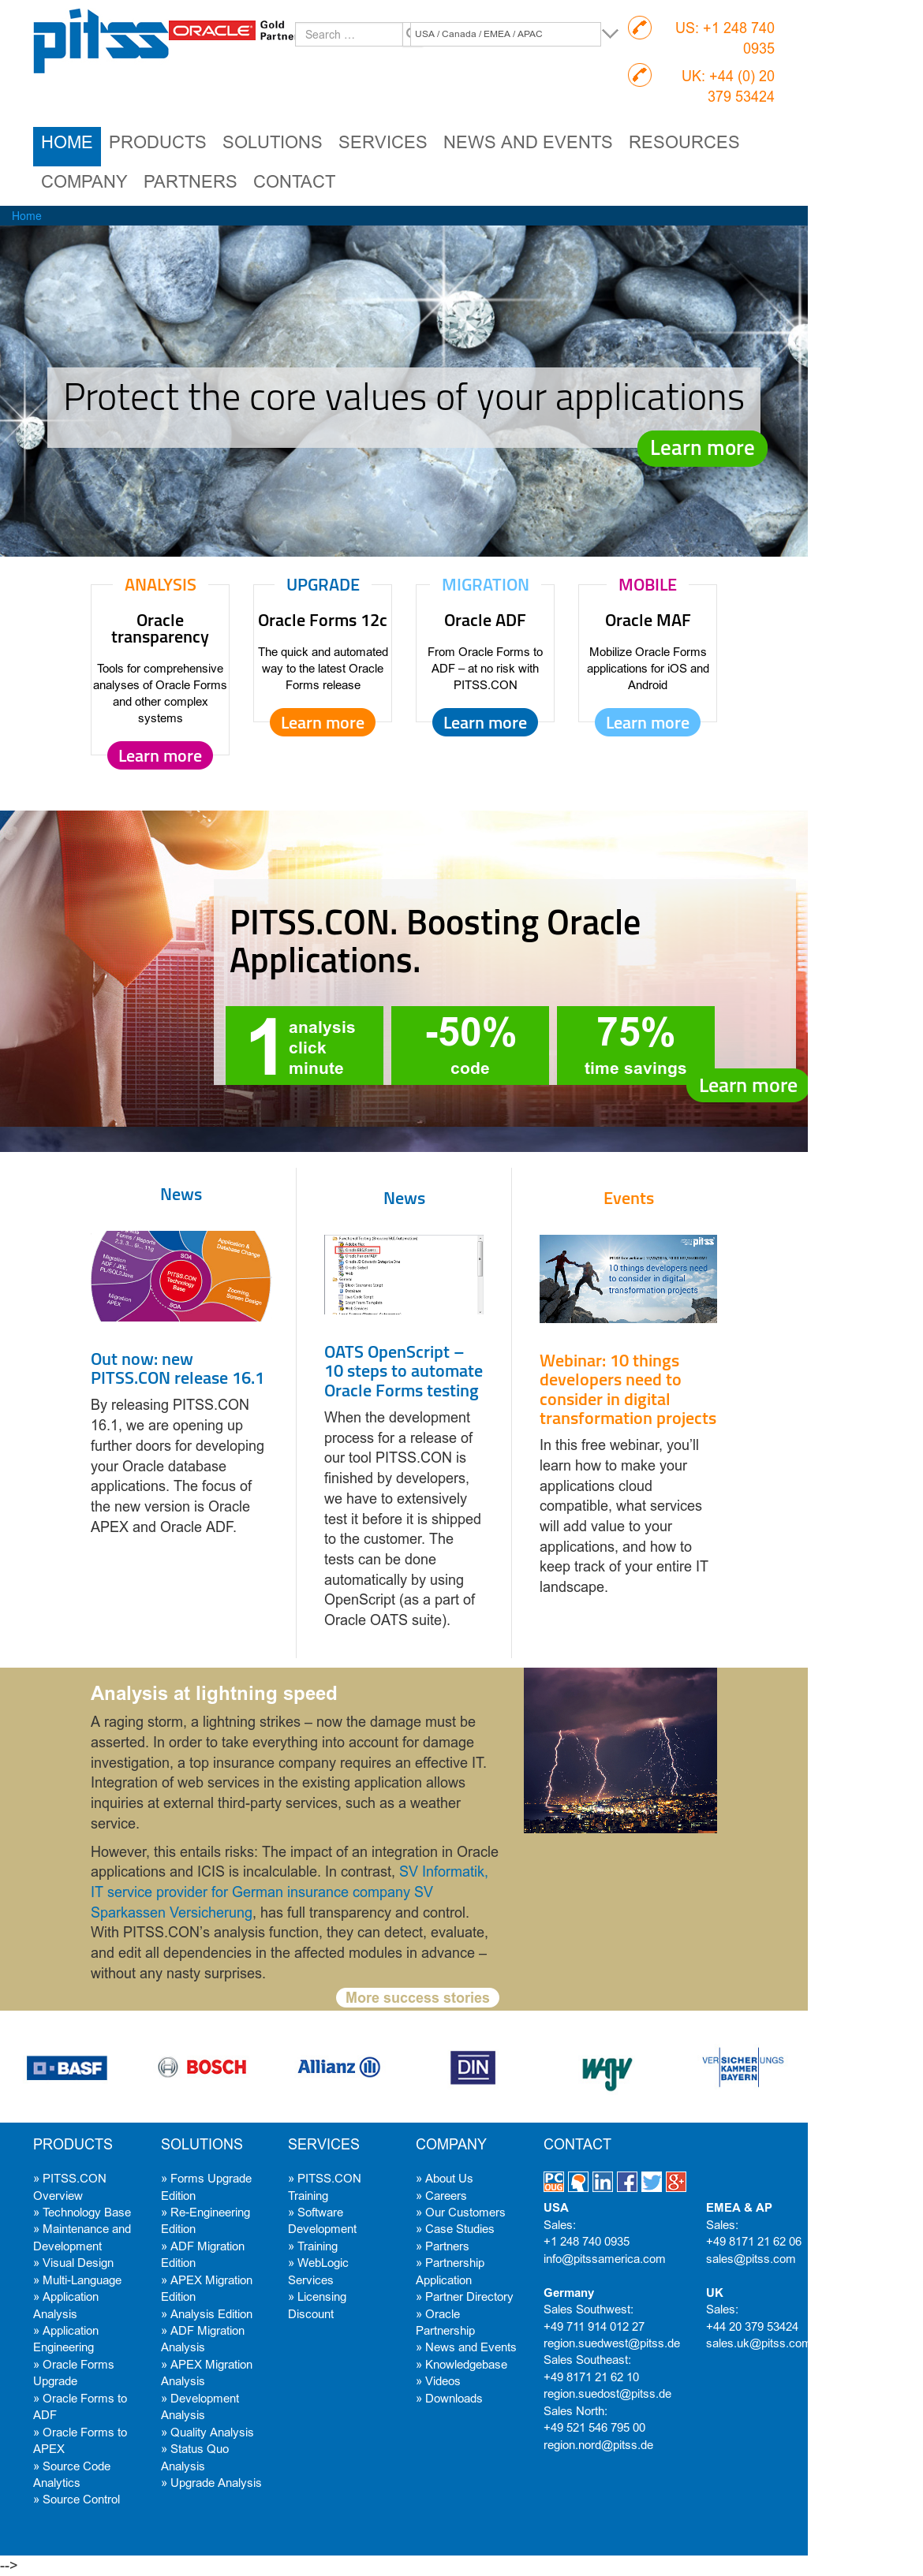 Owler Reports - PITSS Blog Oracle Translation Hub not